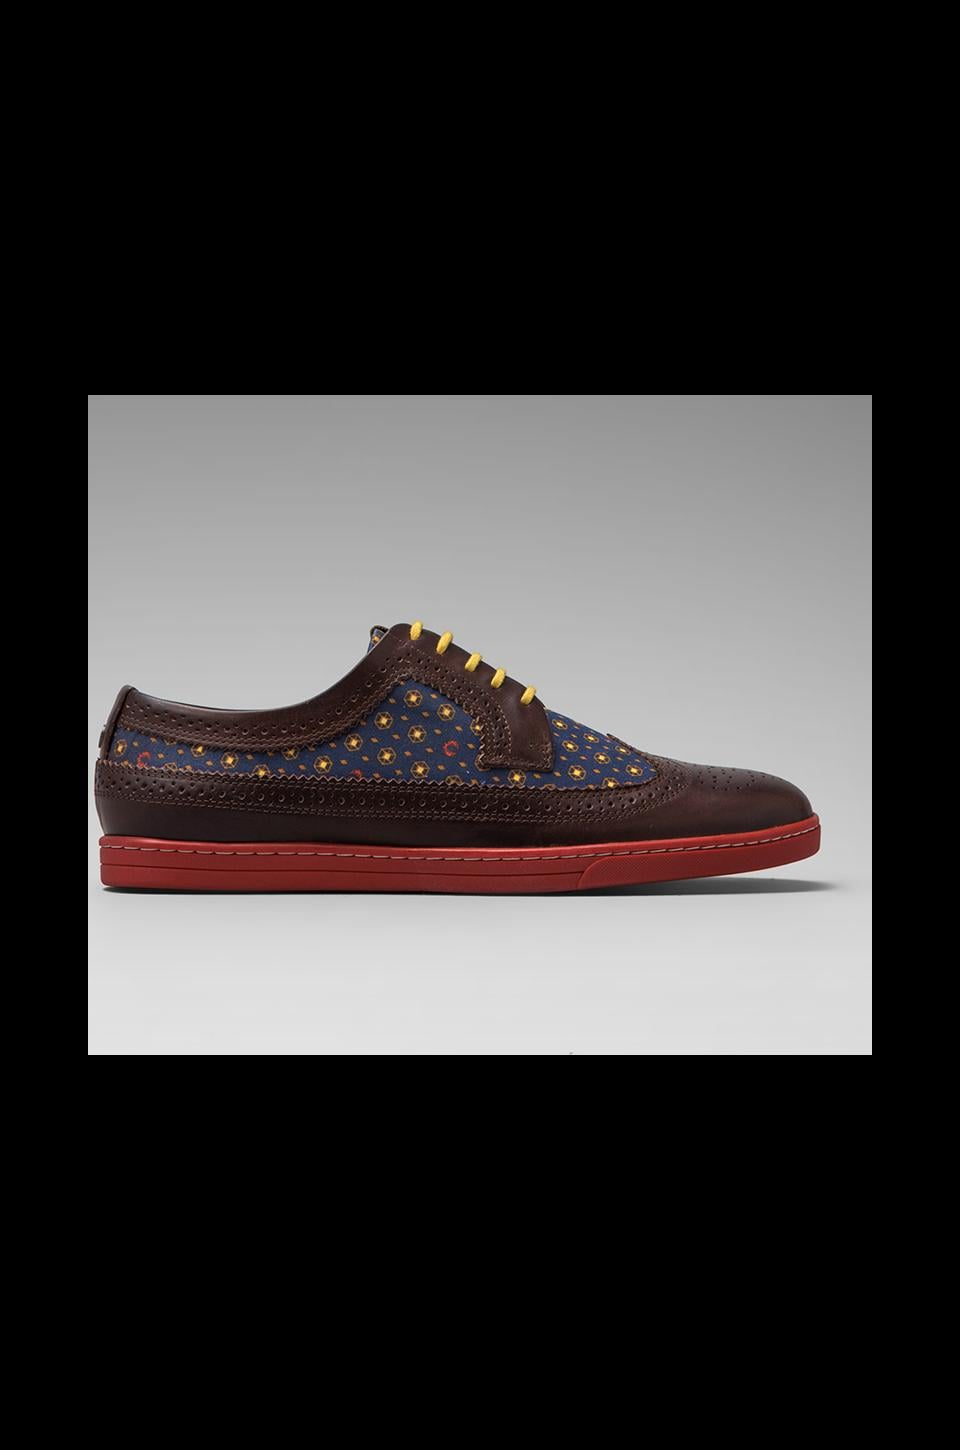 Fred Perry Eton Leather in Chocolate/Carbon Blue